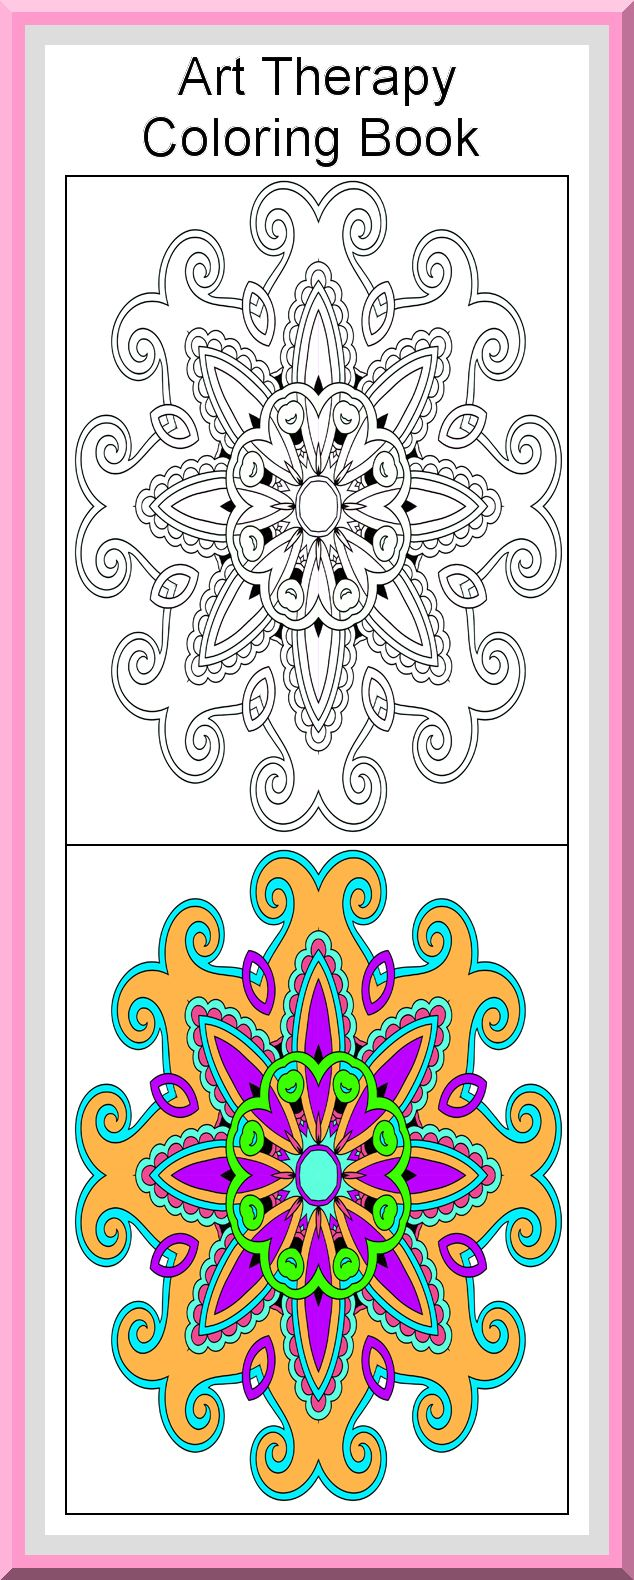 Mandala coloring pages art therapy recovery - 1850ce341ffa0a3cfc1aa9148d1d3661 Mandala Art Therapy Printable Coloring Pages Jpg